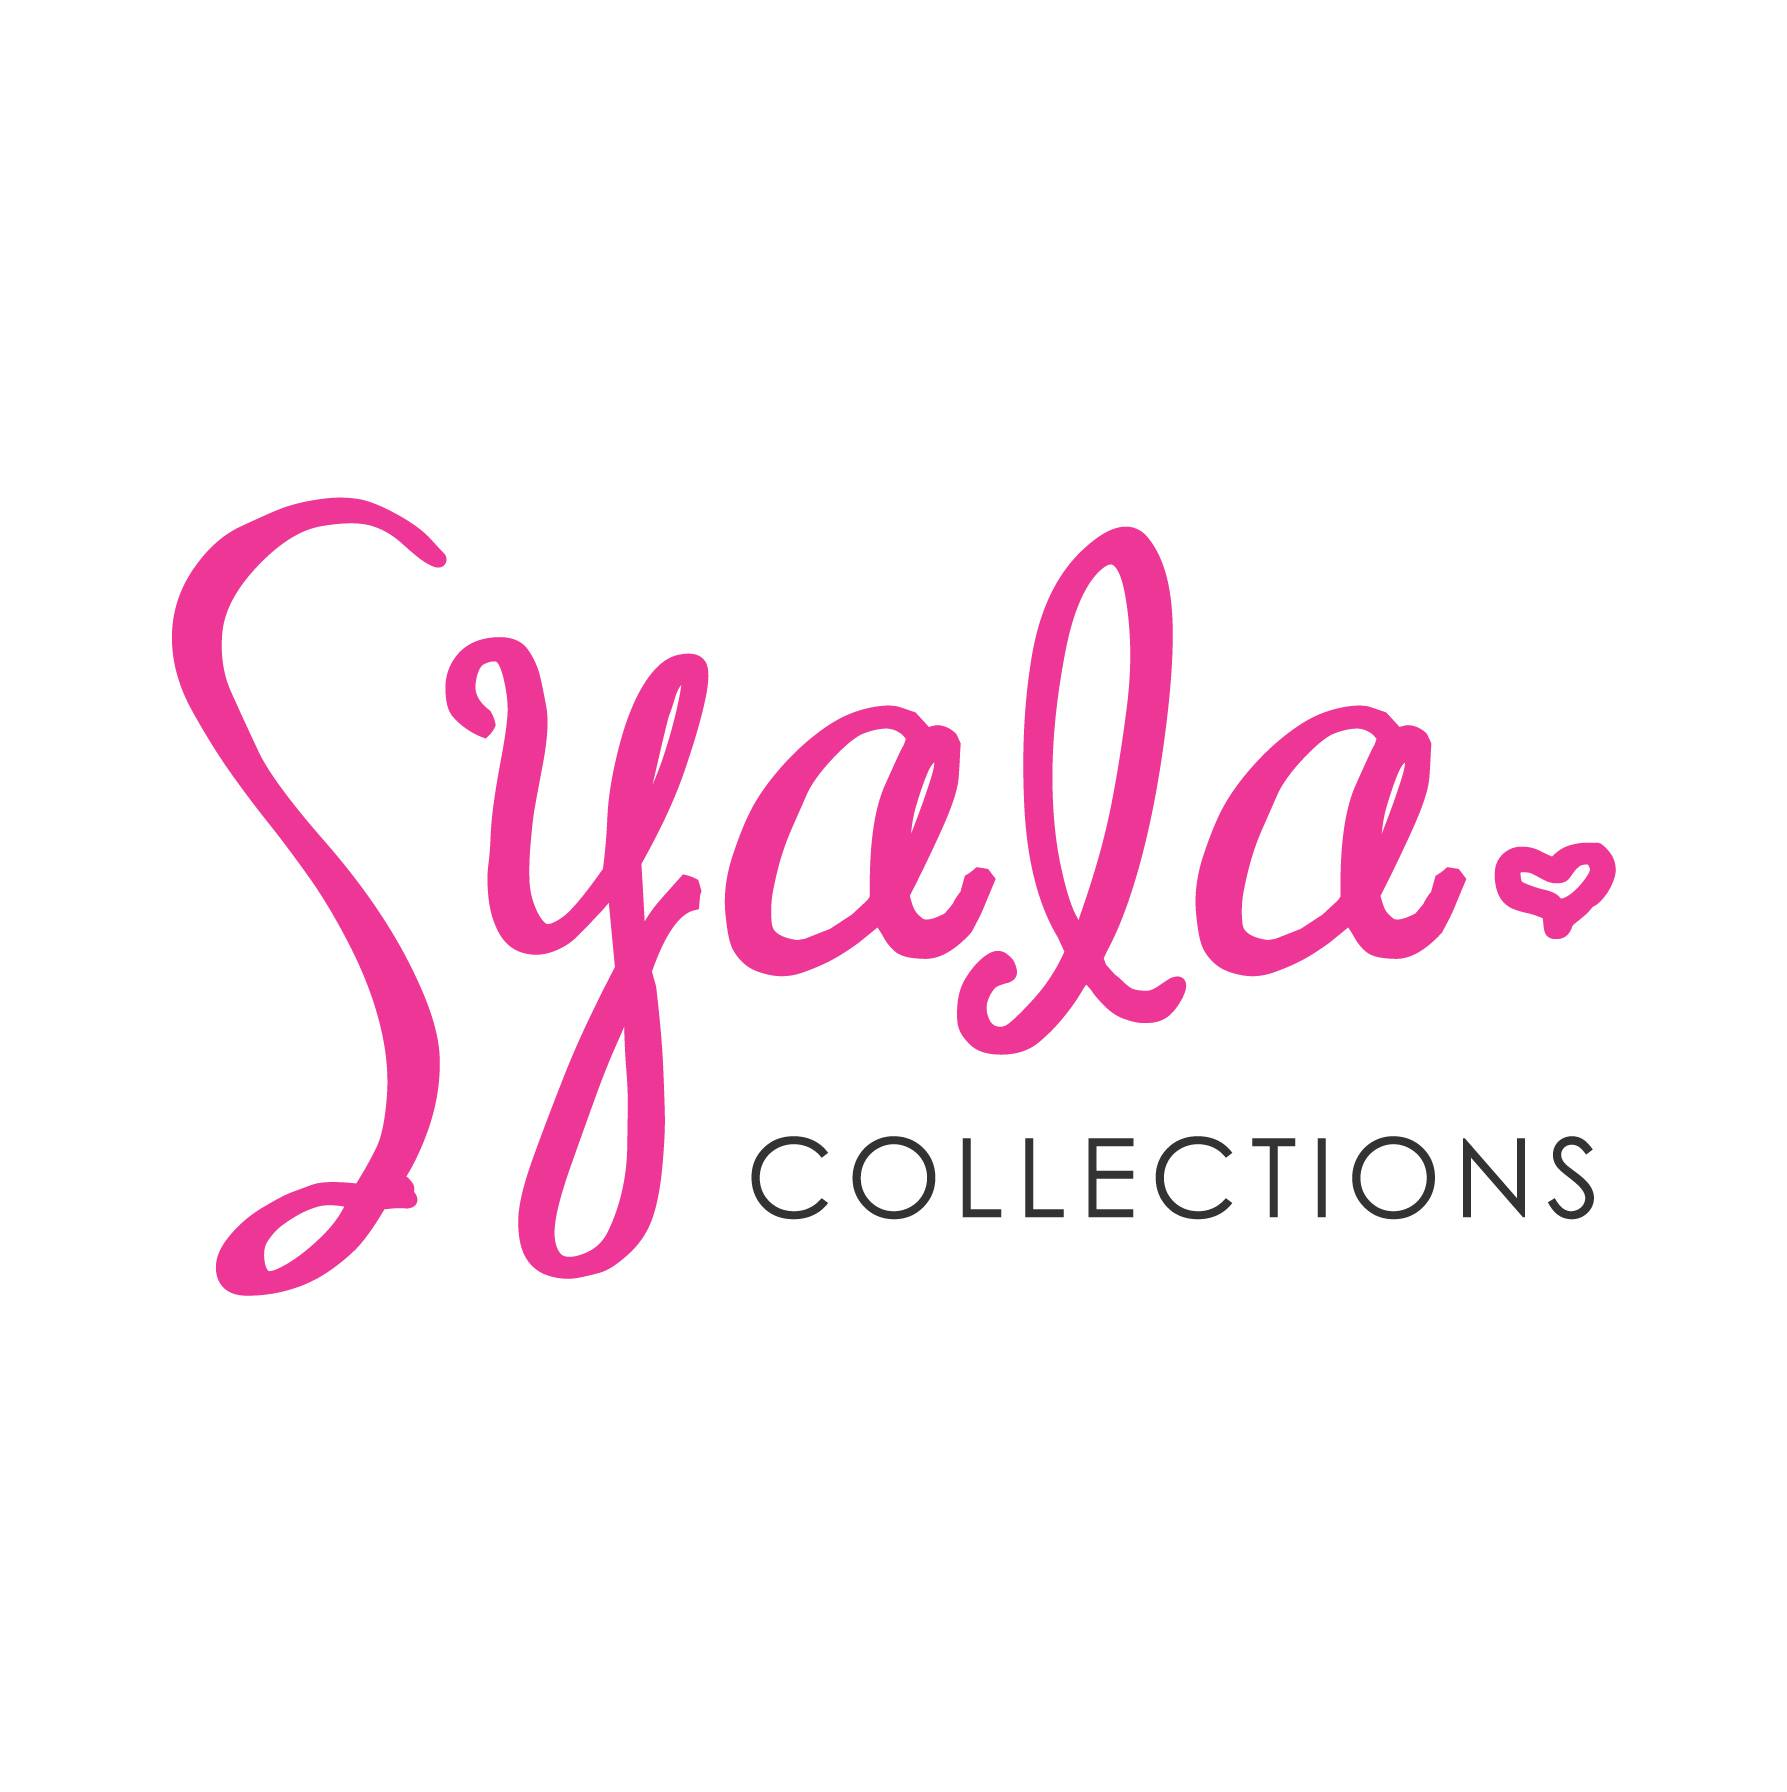 Syala Collections